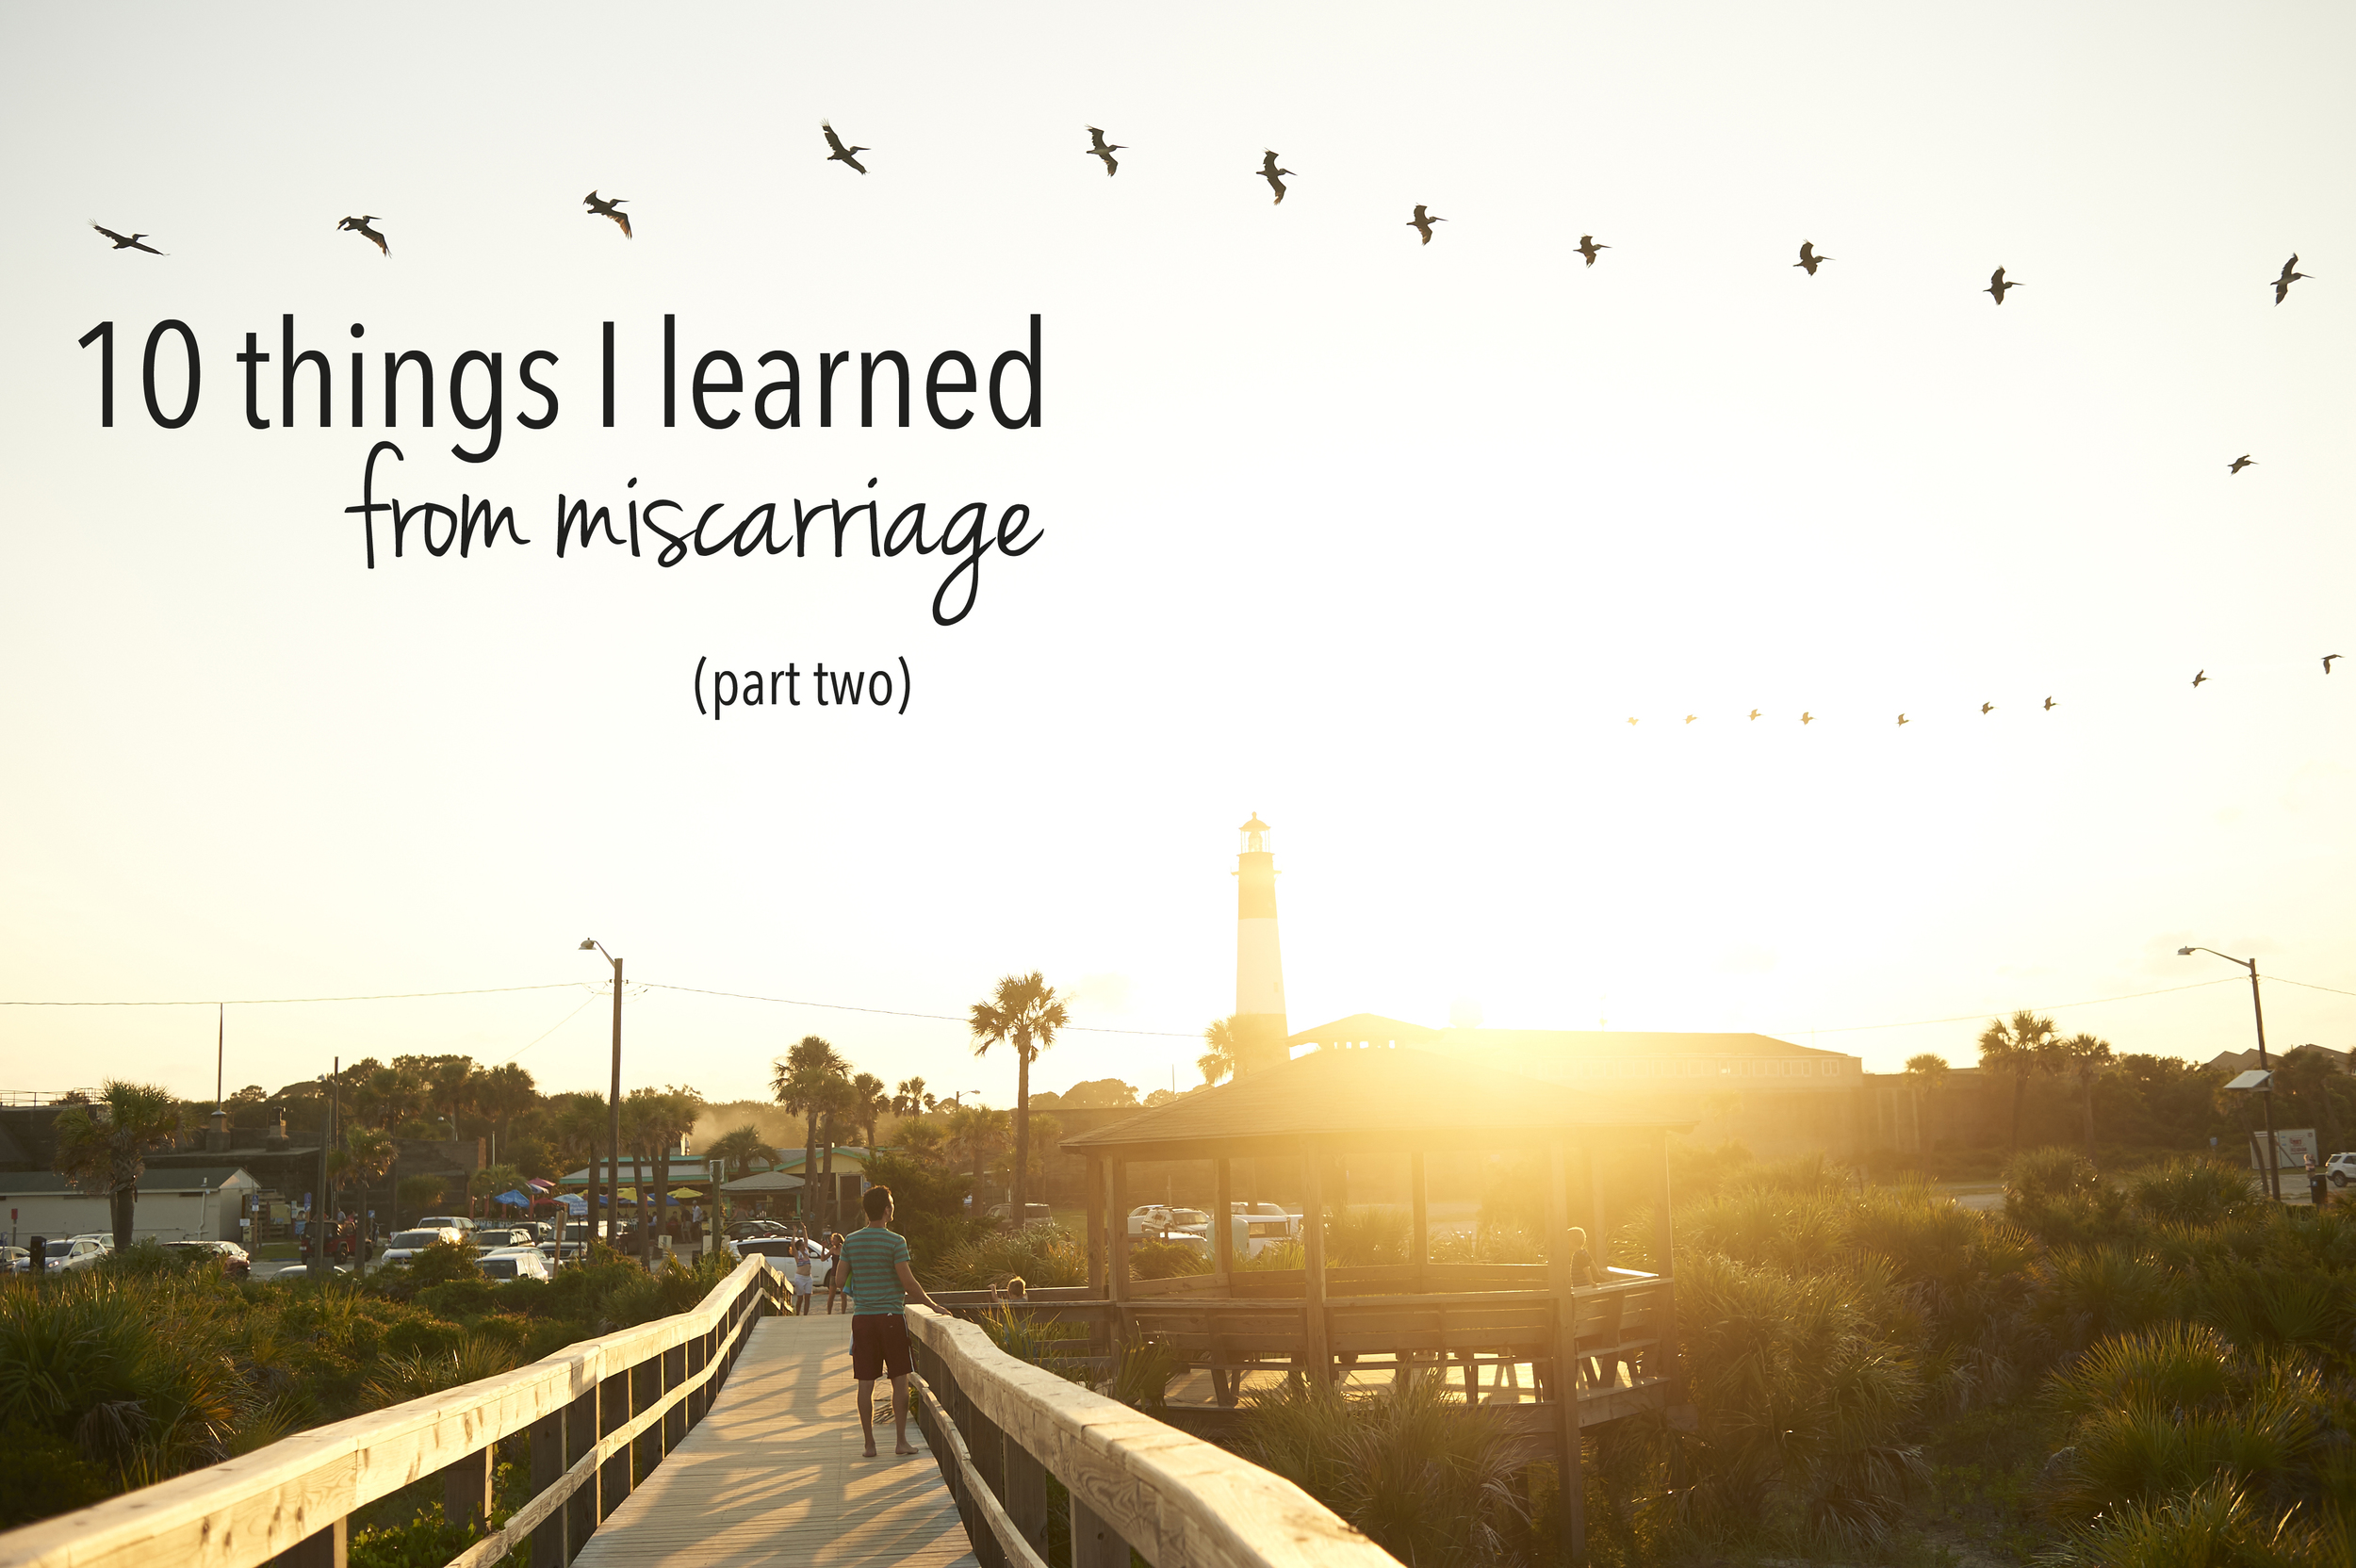 miscarriage, ten things I learned, hope, faith, motherhood, baby loss